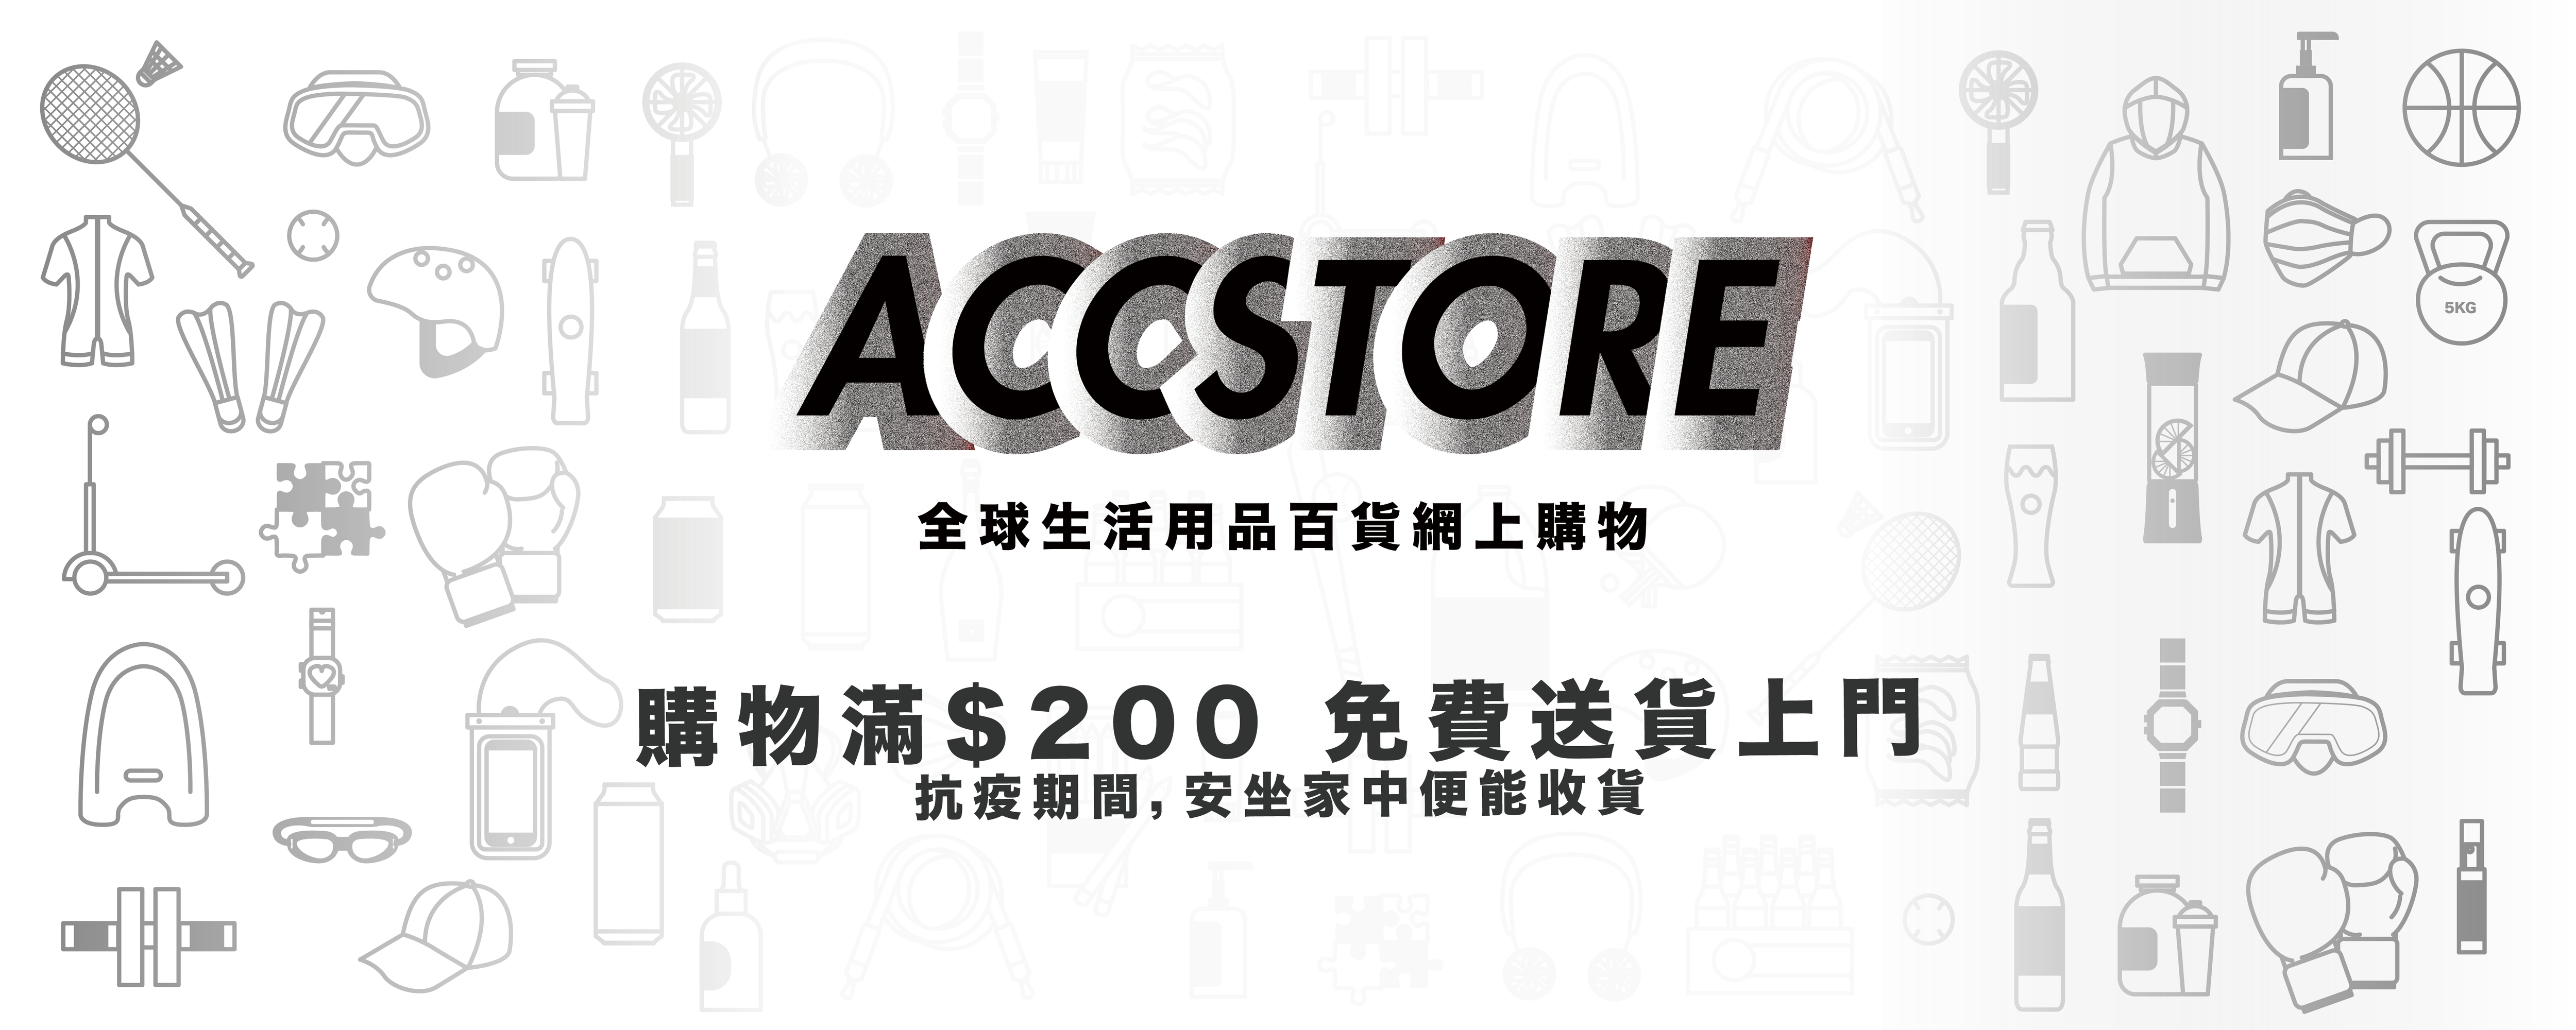 Accstore free shipping